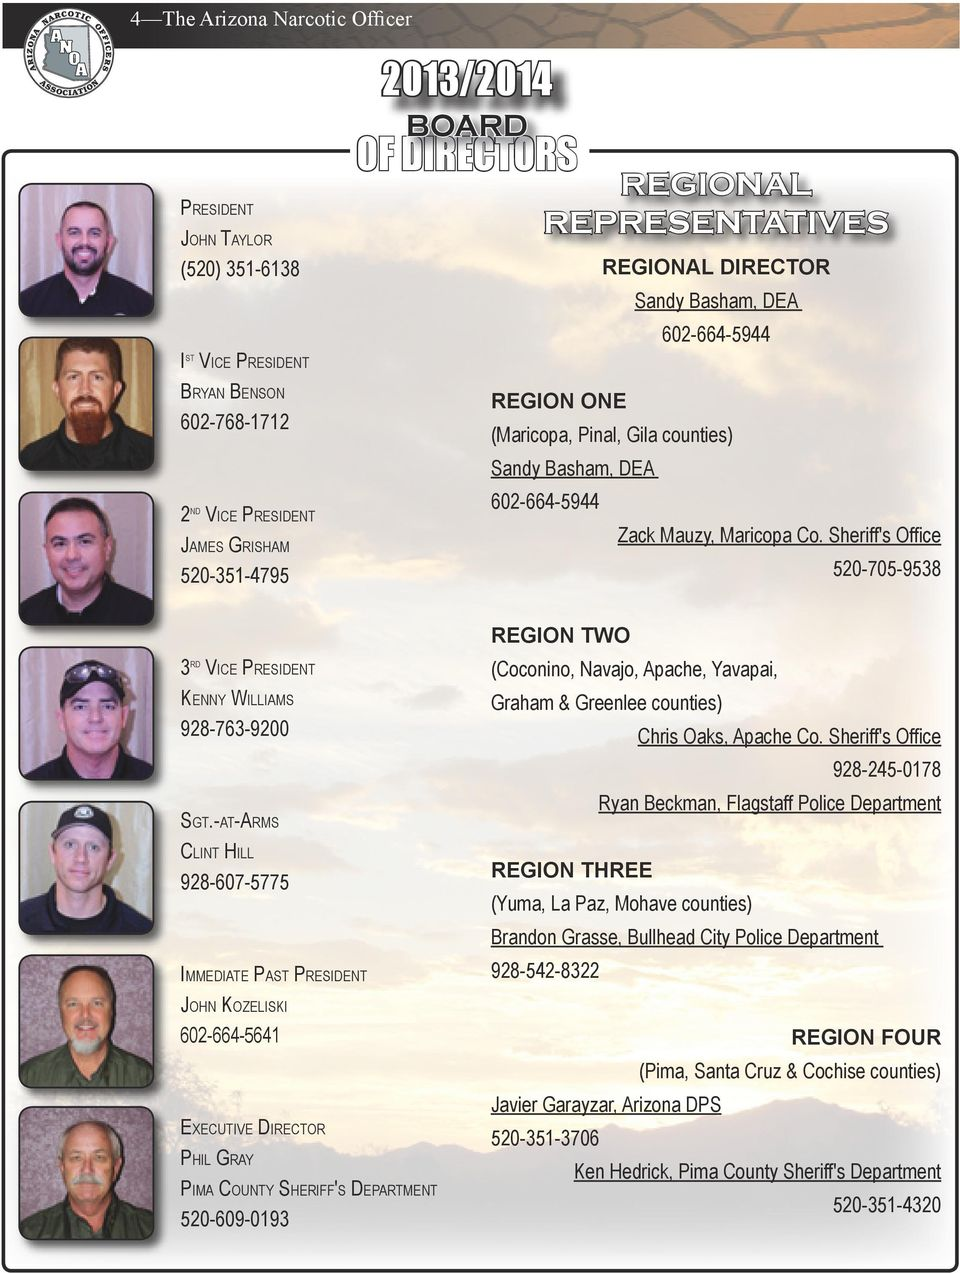 Sheriff's Office 520-705-9538 3 rd Vice President Kenny Williams 928-763-9200 Sgt.-at-Arms REGION TWO (Coconino, Navajo, Apache, Yavapai, Graham & Greenlee counties) Chris Oaks, Apache Co.